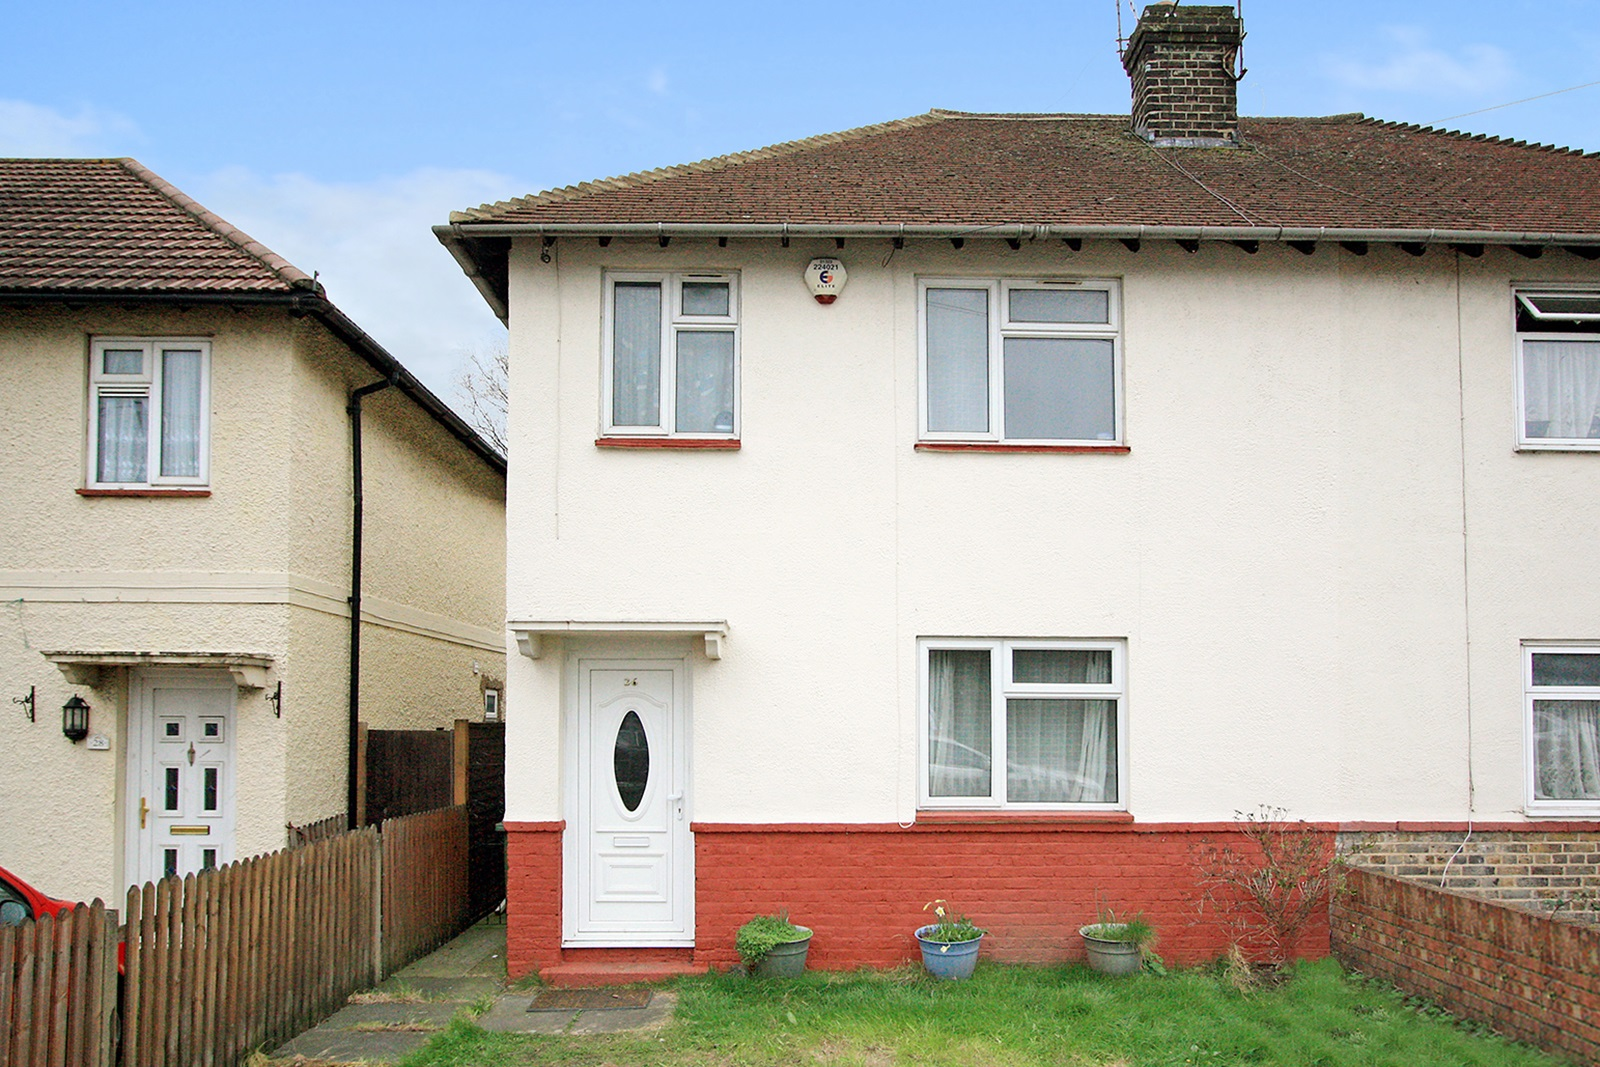 Photo 2, Howbury Lane, Erith, DA8